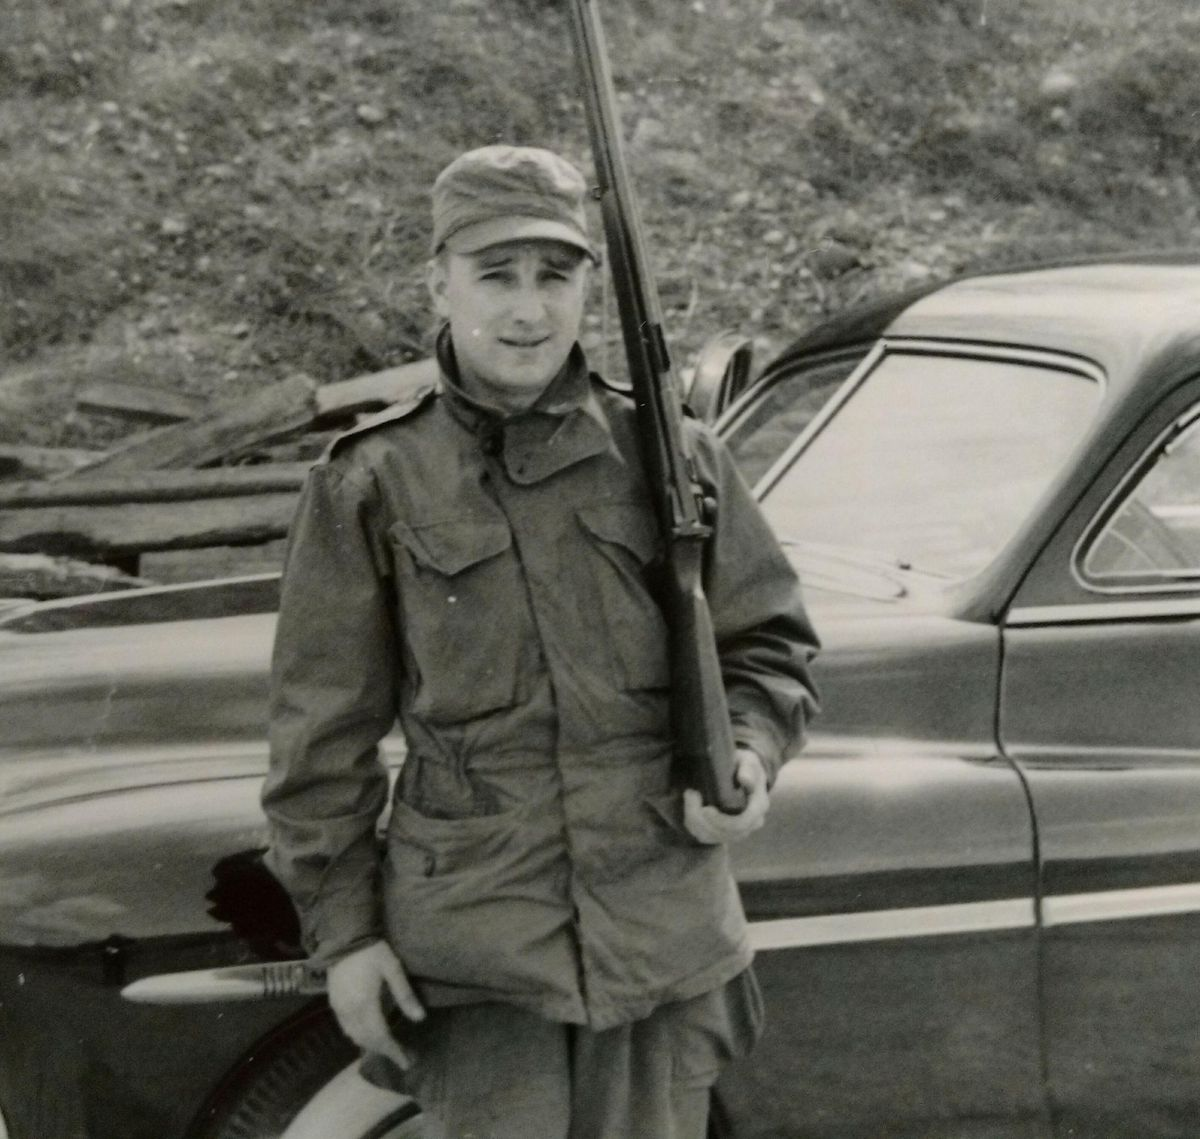 Casey Bloom served in the Army during the Korean War.